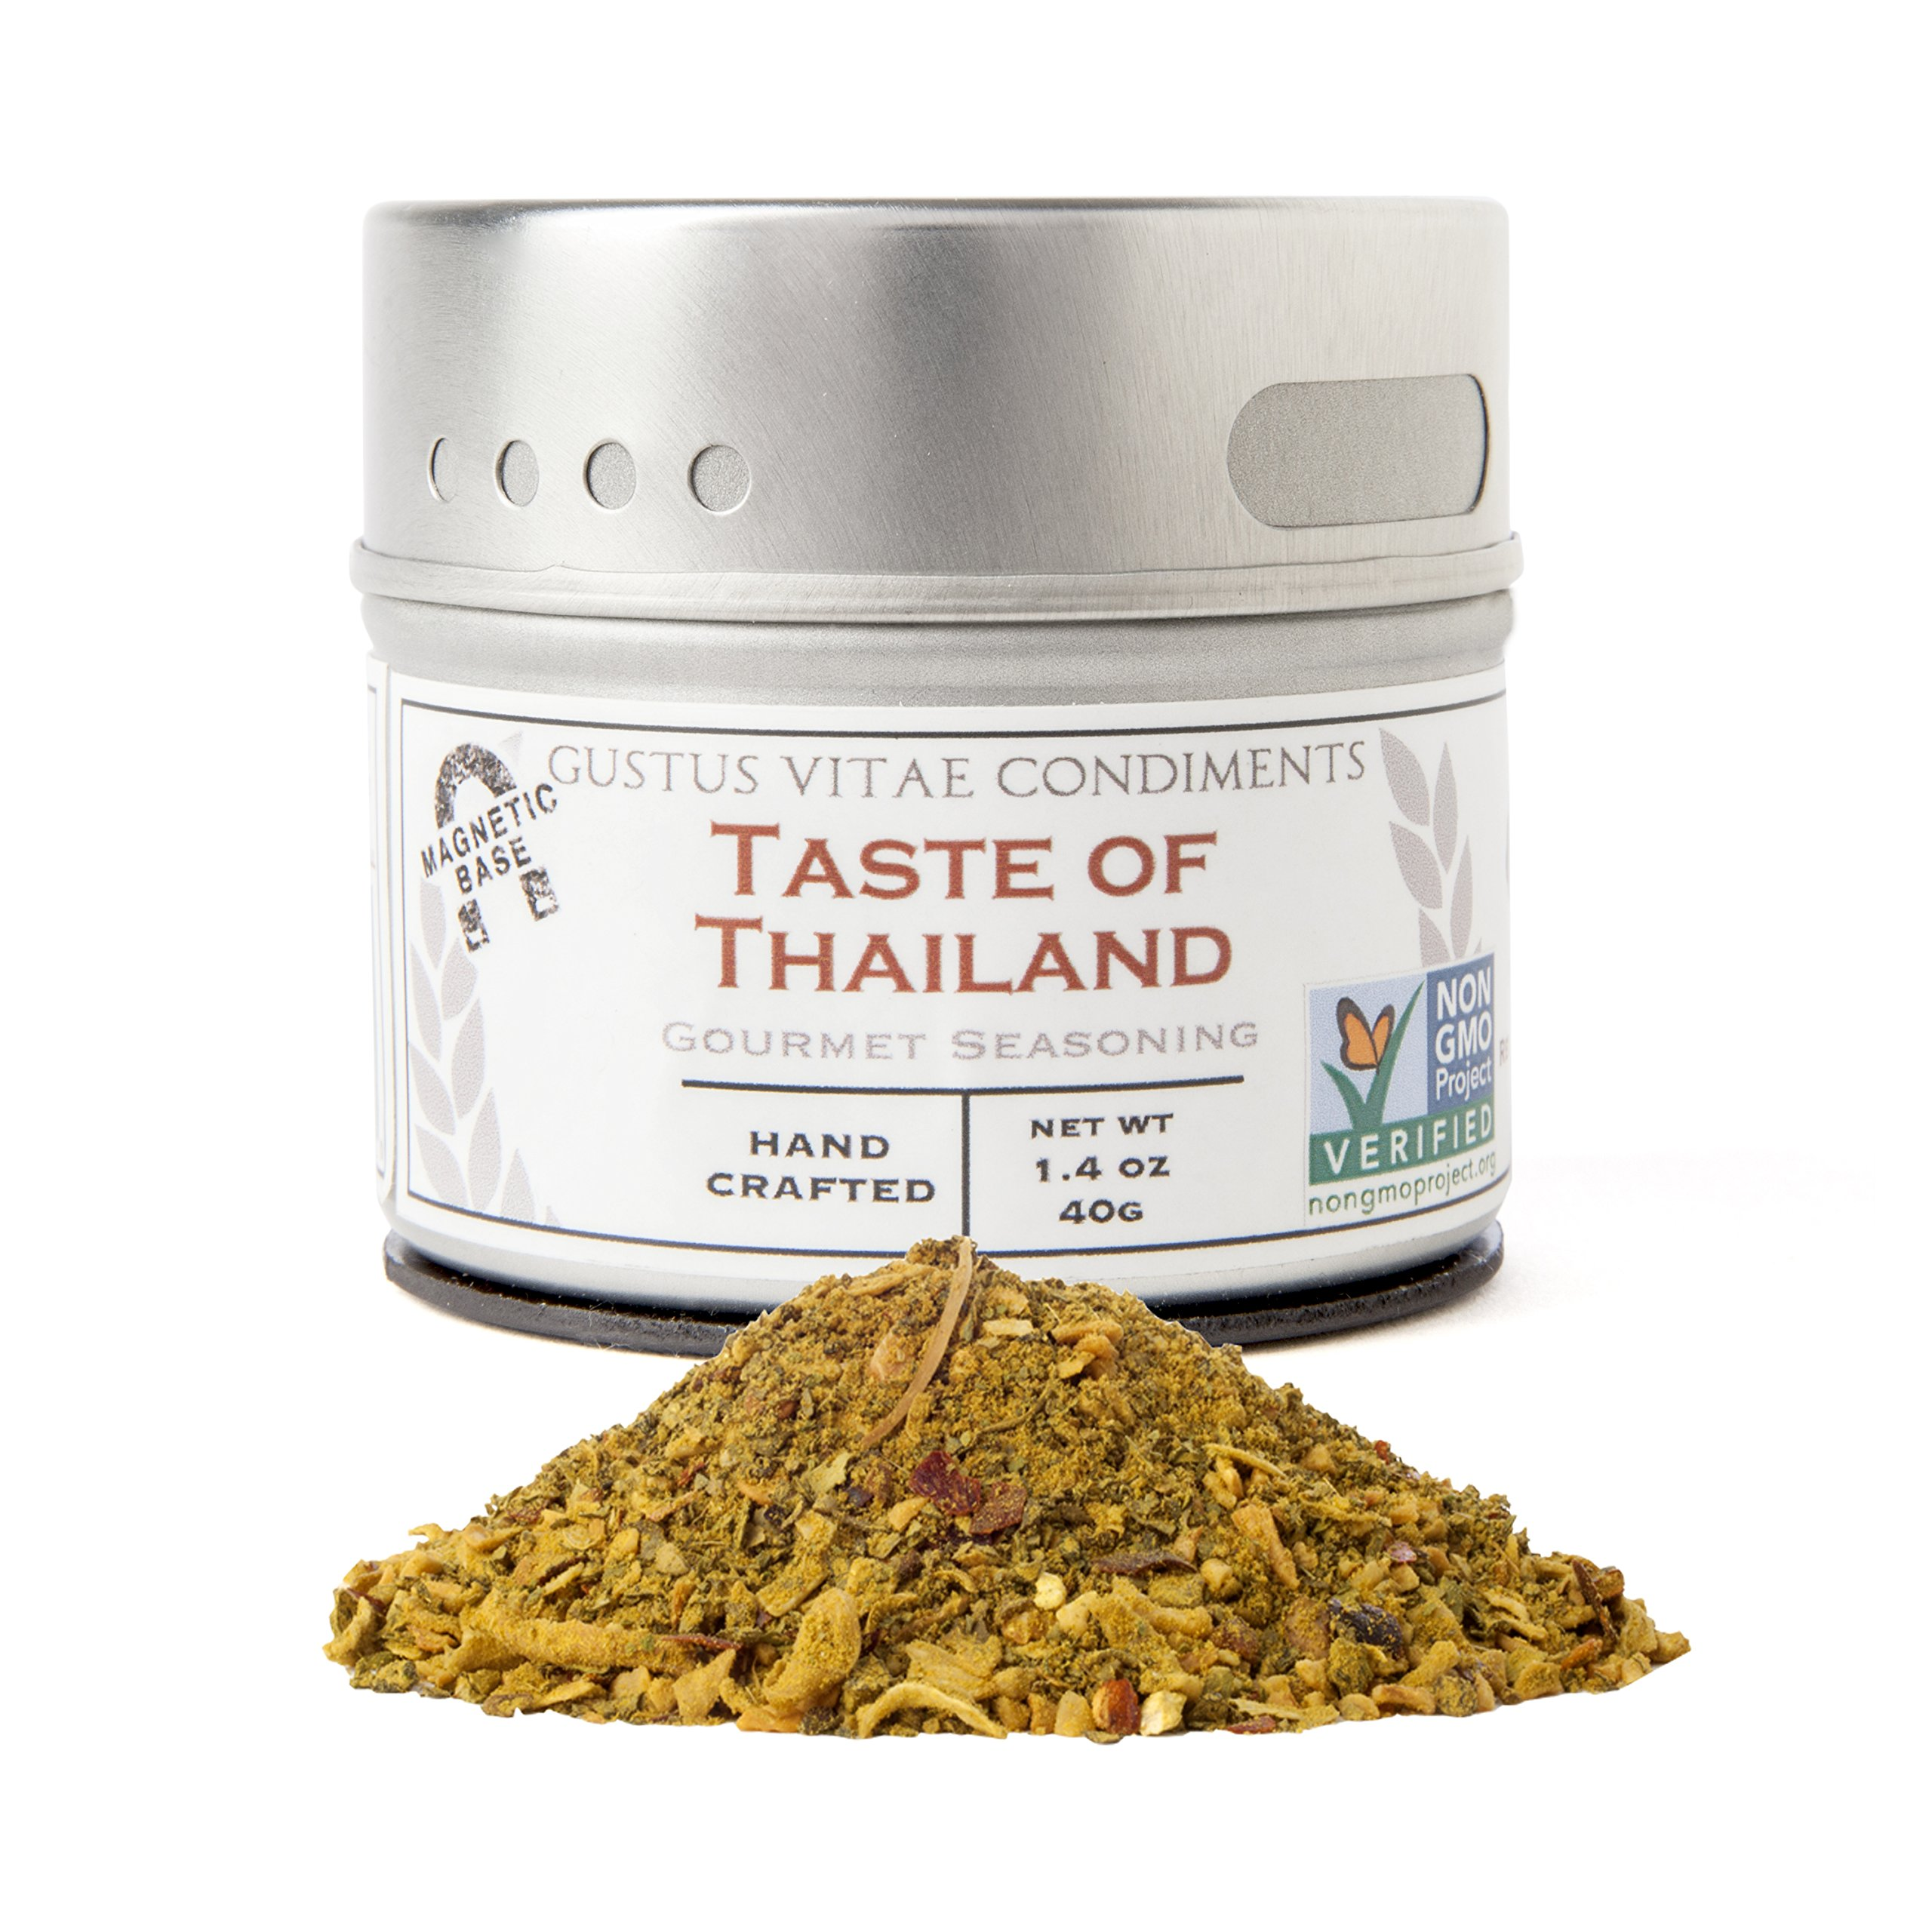 Taste of Thailand Seasoning | Non GMO Verified | Magnetic Tin | Artisan Spice Blend | 1.4oz | Crafted in Small Batches by Gustus Vitae | #28